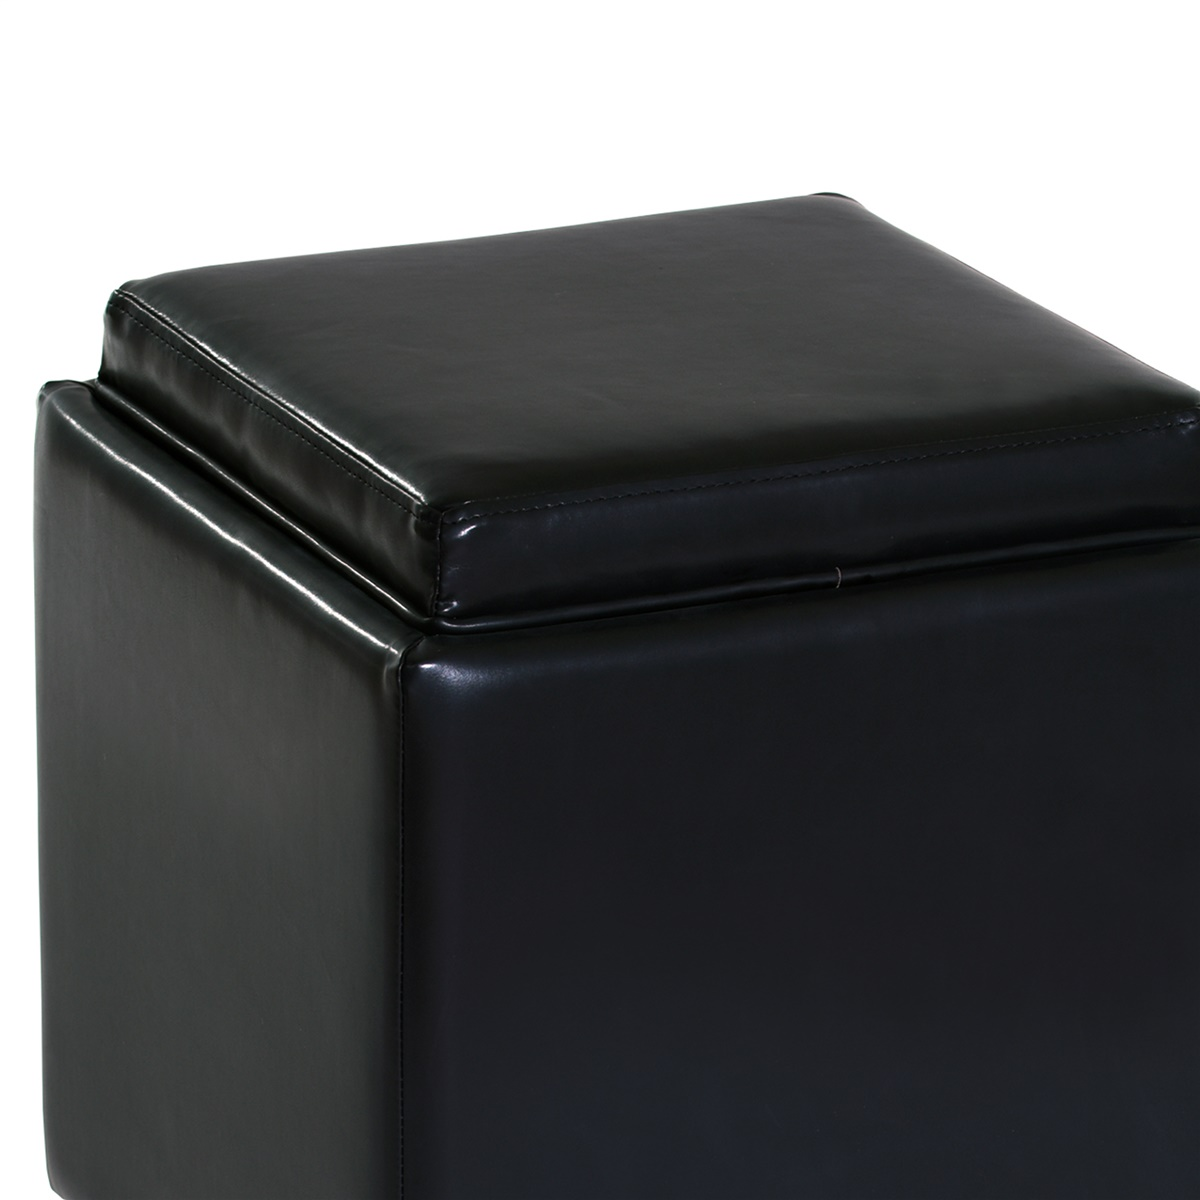 Remarkable Rainbow Leather Storage Ottoman With Tray Gmtry Best Dining Table And Chair Ideas Images Gmtryco